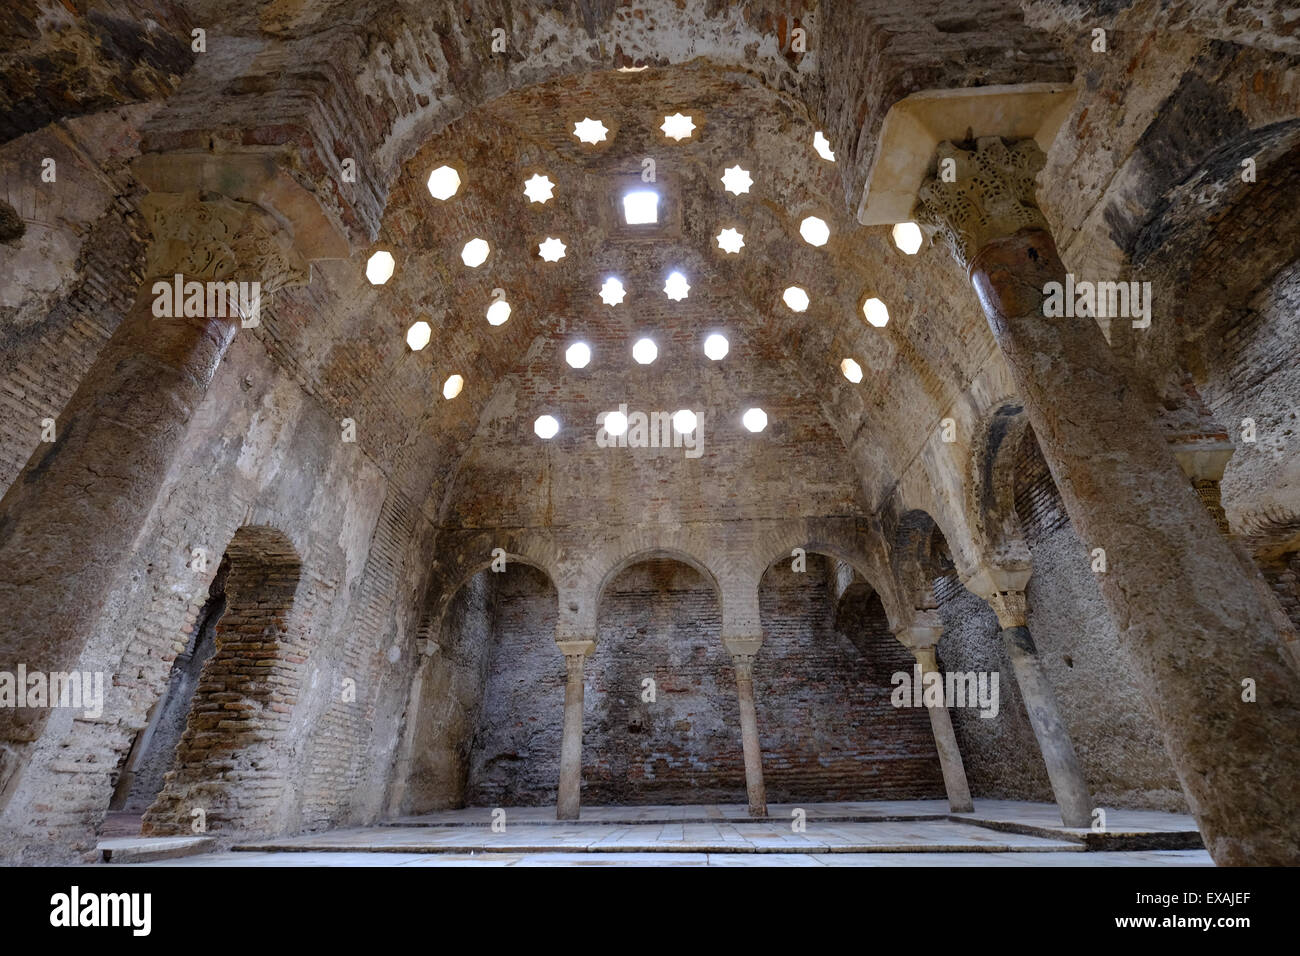 Arab baths stock photos arab baths stock images alamy - Banos arabes cadiz ...